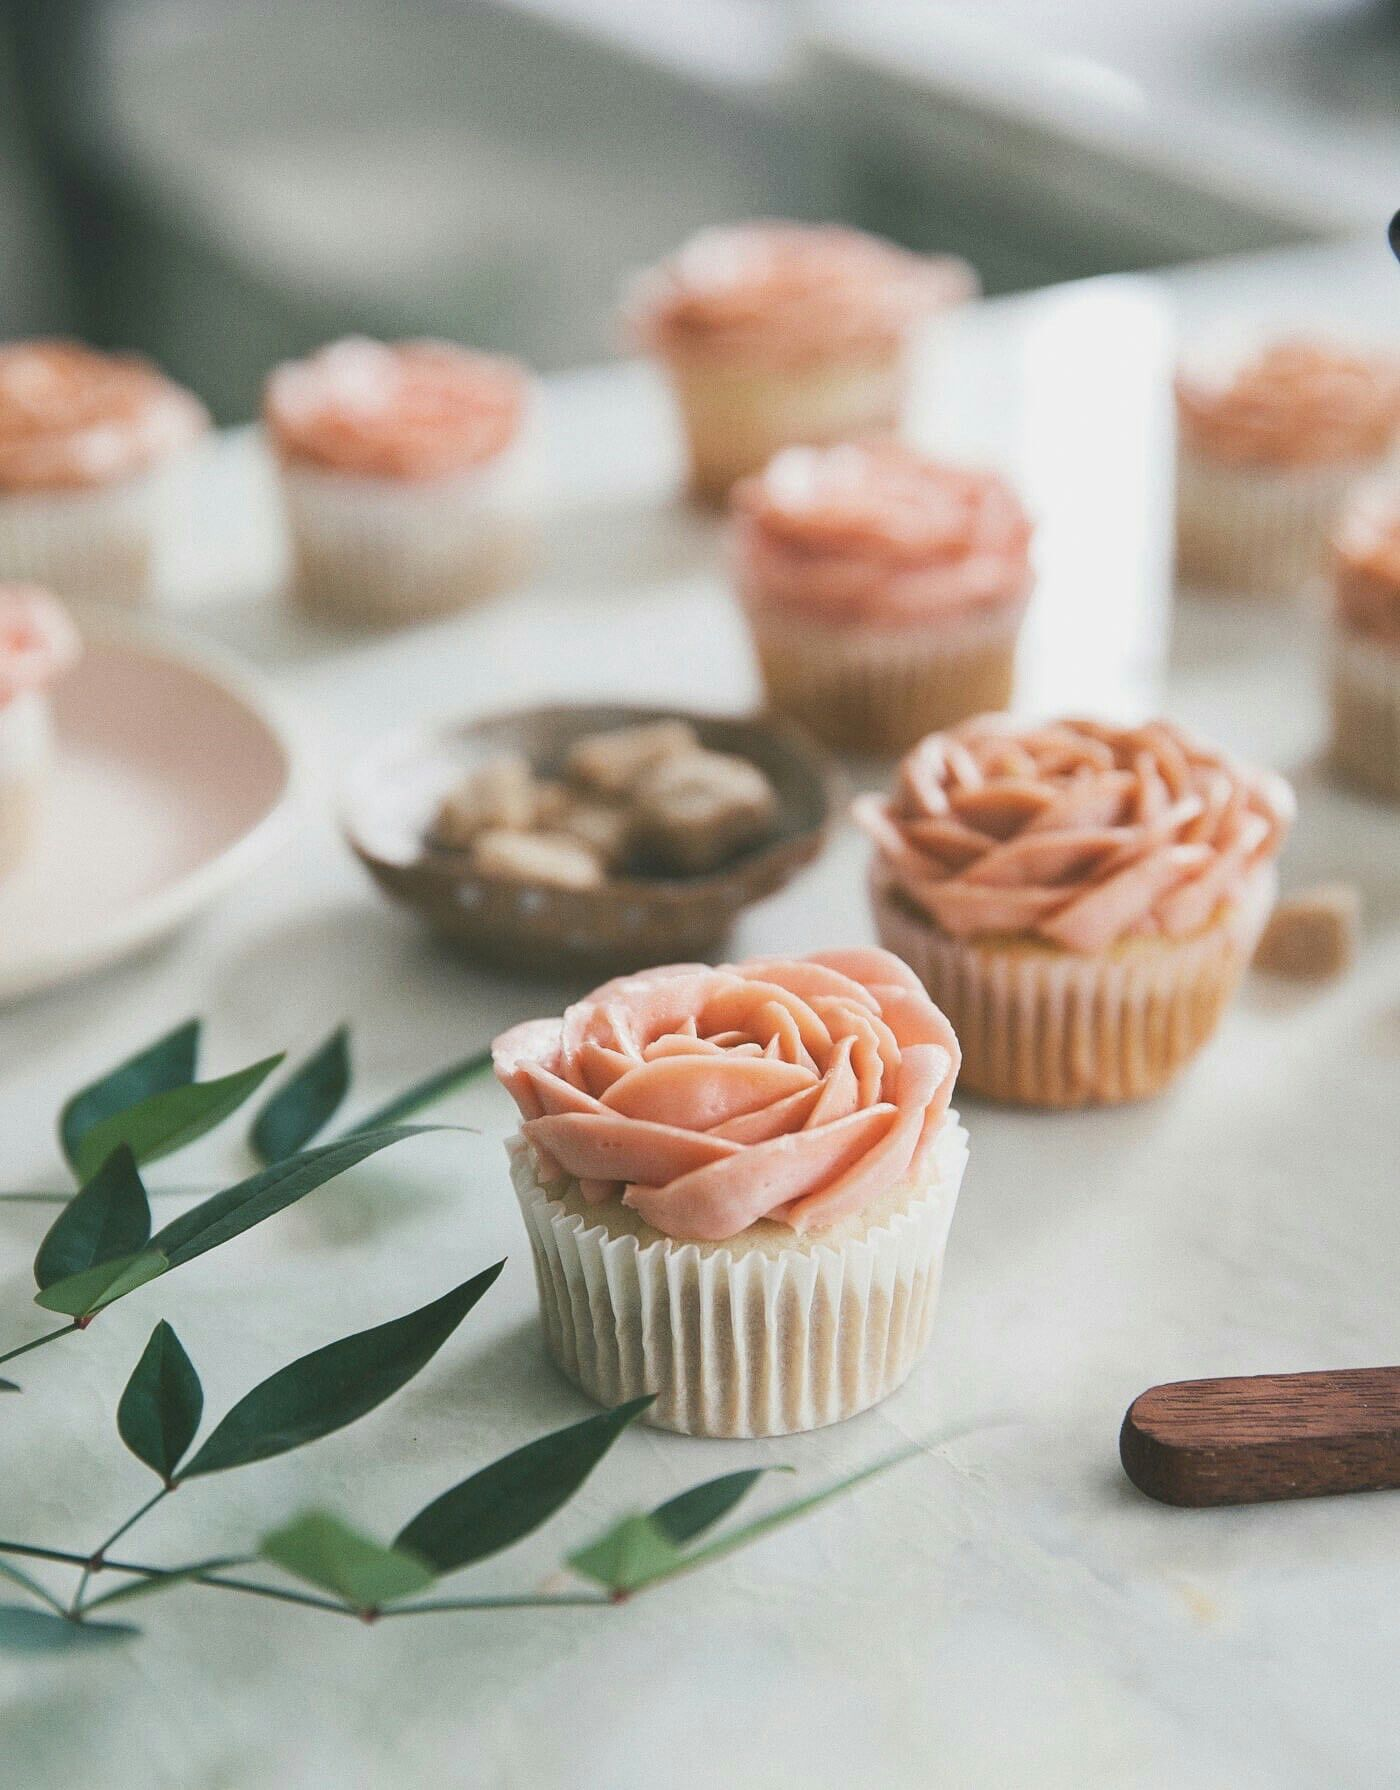 Pin by Snehi on FOoD in 2019 Cappuccino cupcakes